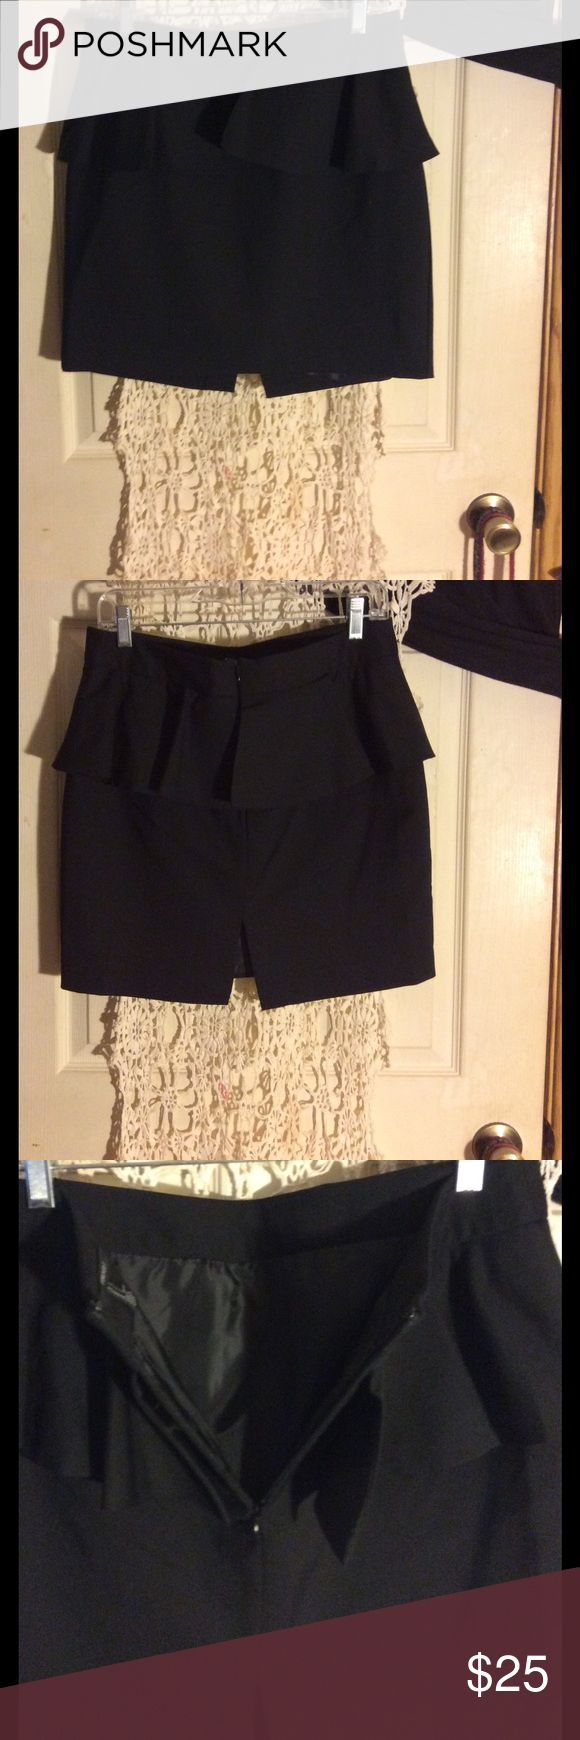 Adorable black peplum skirt In excellent condition. Zips up the back, fully lined. Great skirt!  The zipper is a tiny bit sticky at the top of the skirt. Forever 21 Skirts Mini